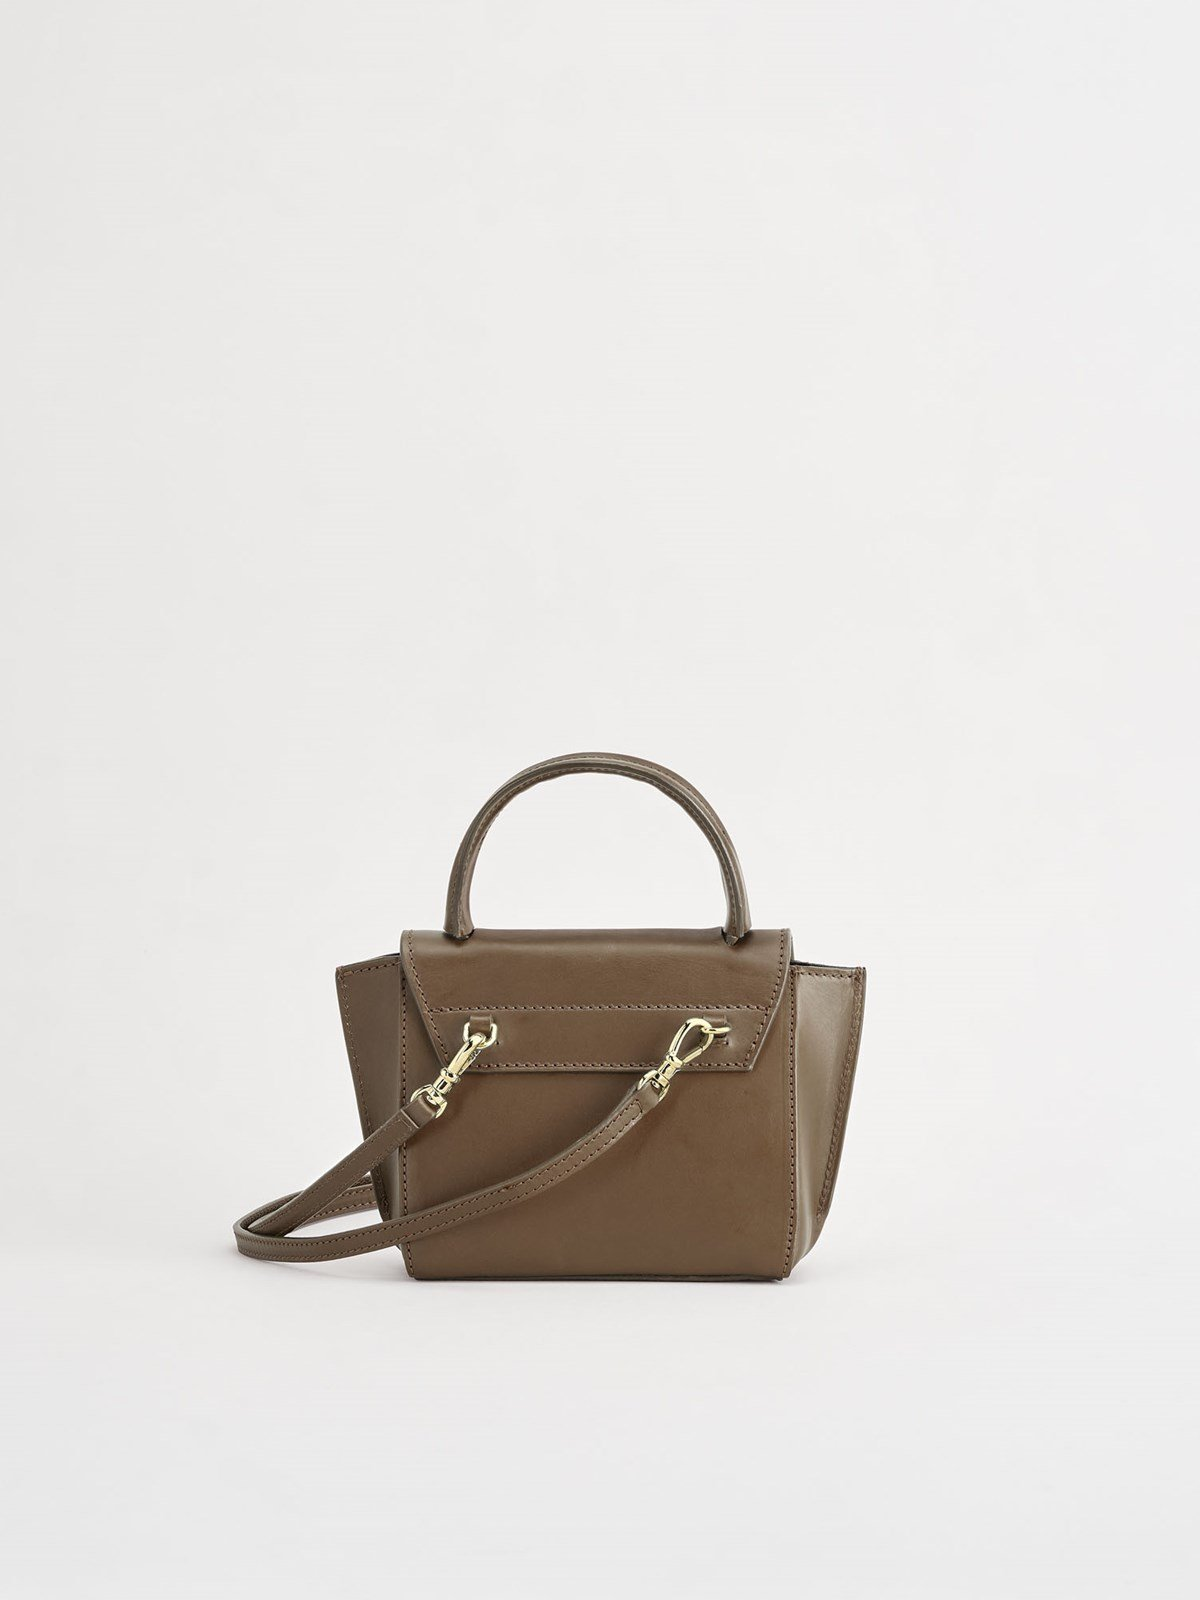 Montalcino Khaki Brown Mini handbag